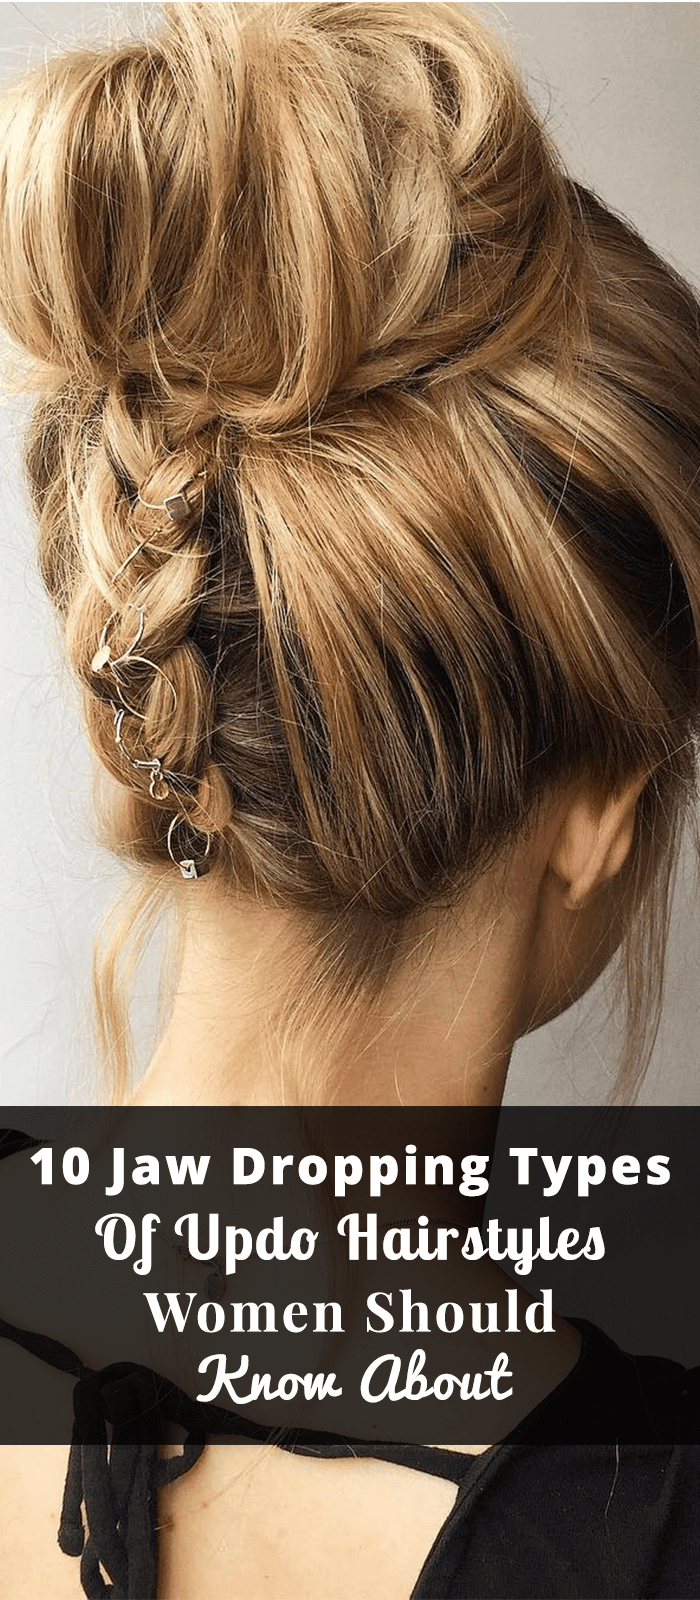 10 Jaw Dropping Types Of Updo Hairstyles Women Should Know About